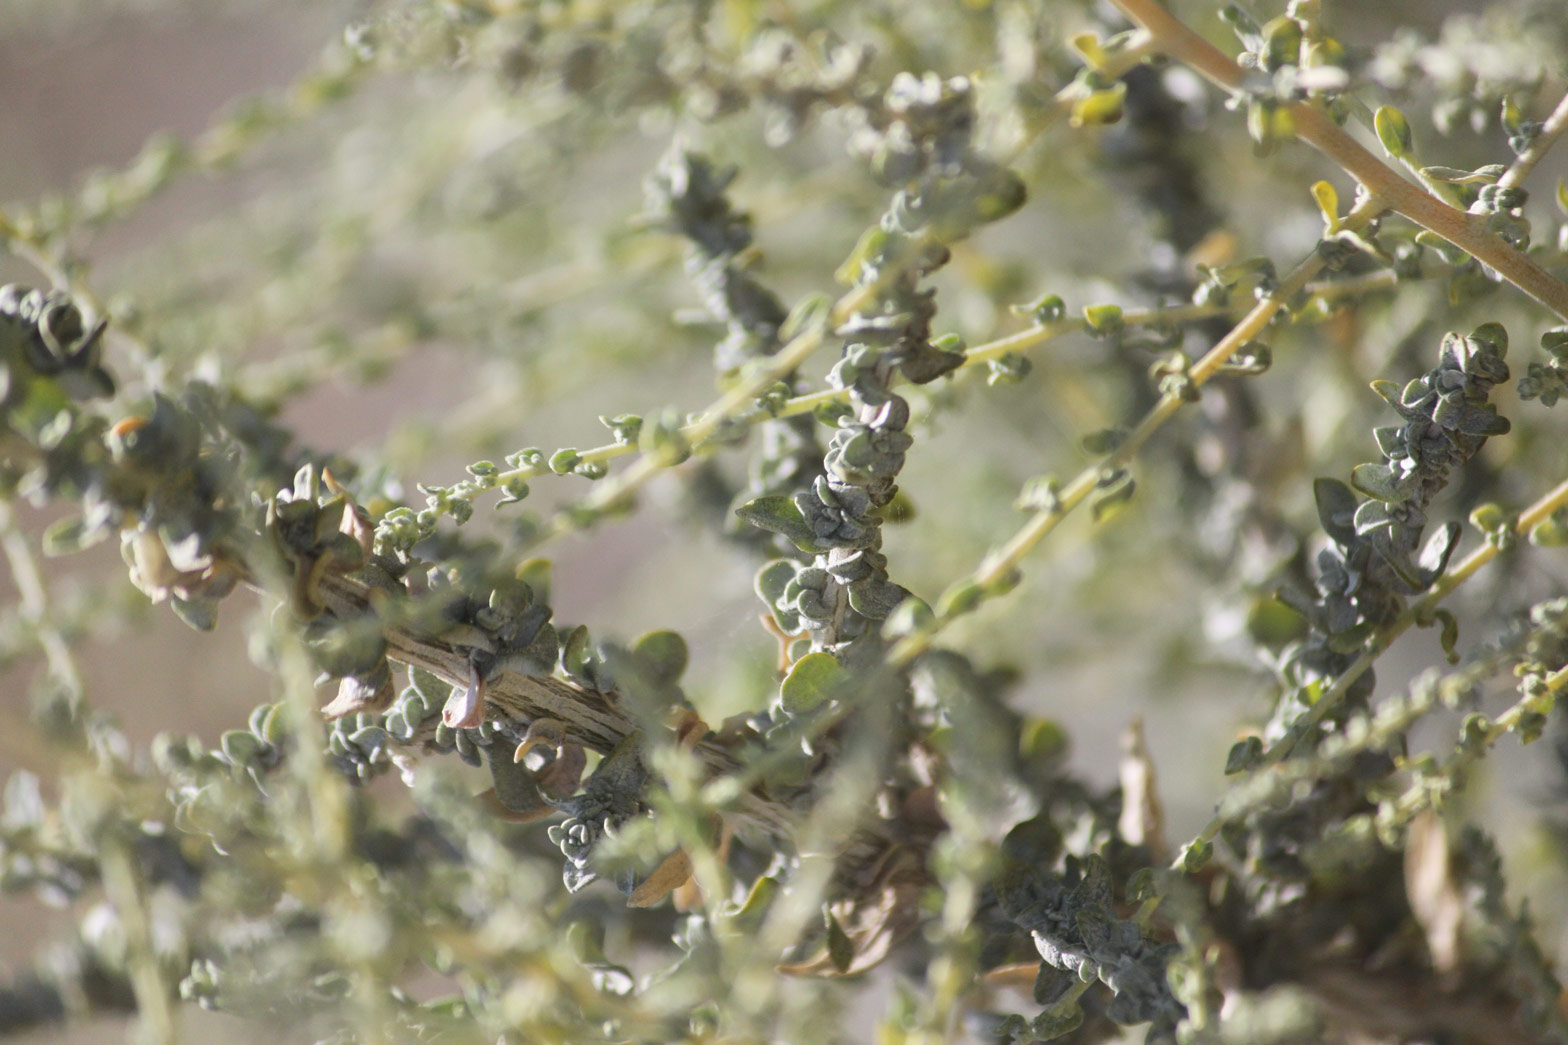 A close-up of the leaves of the Desert Salt Bush.